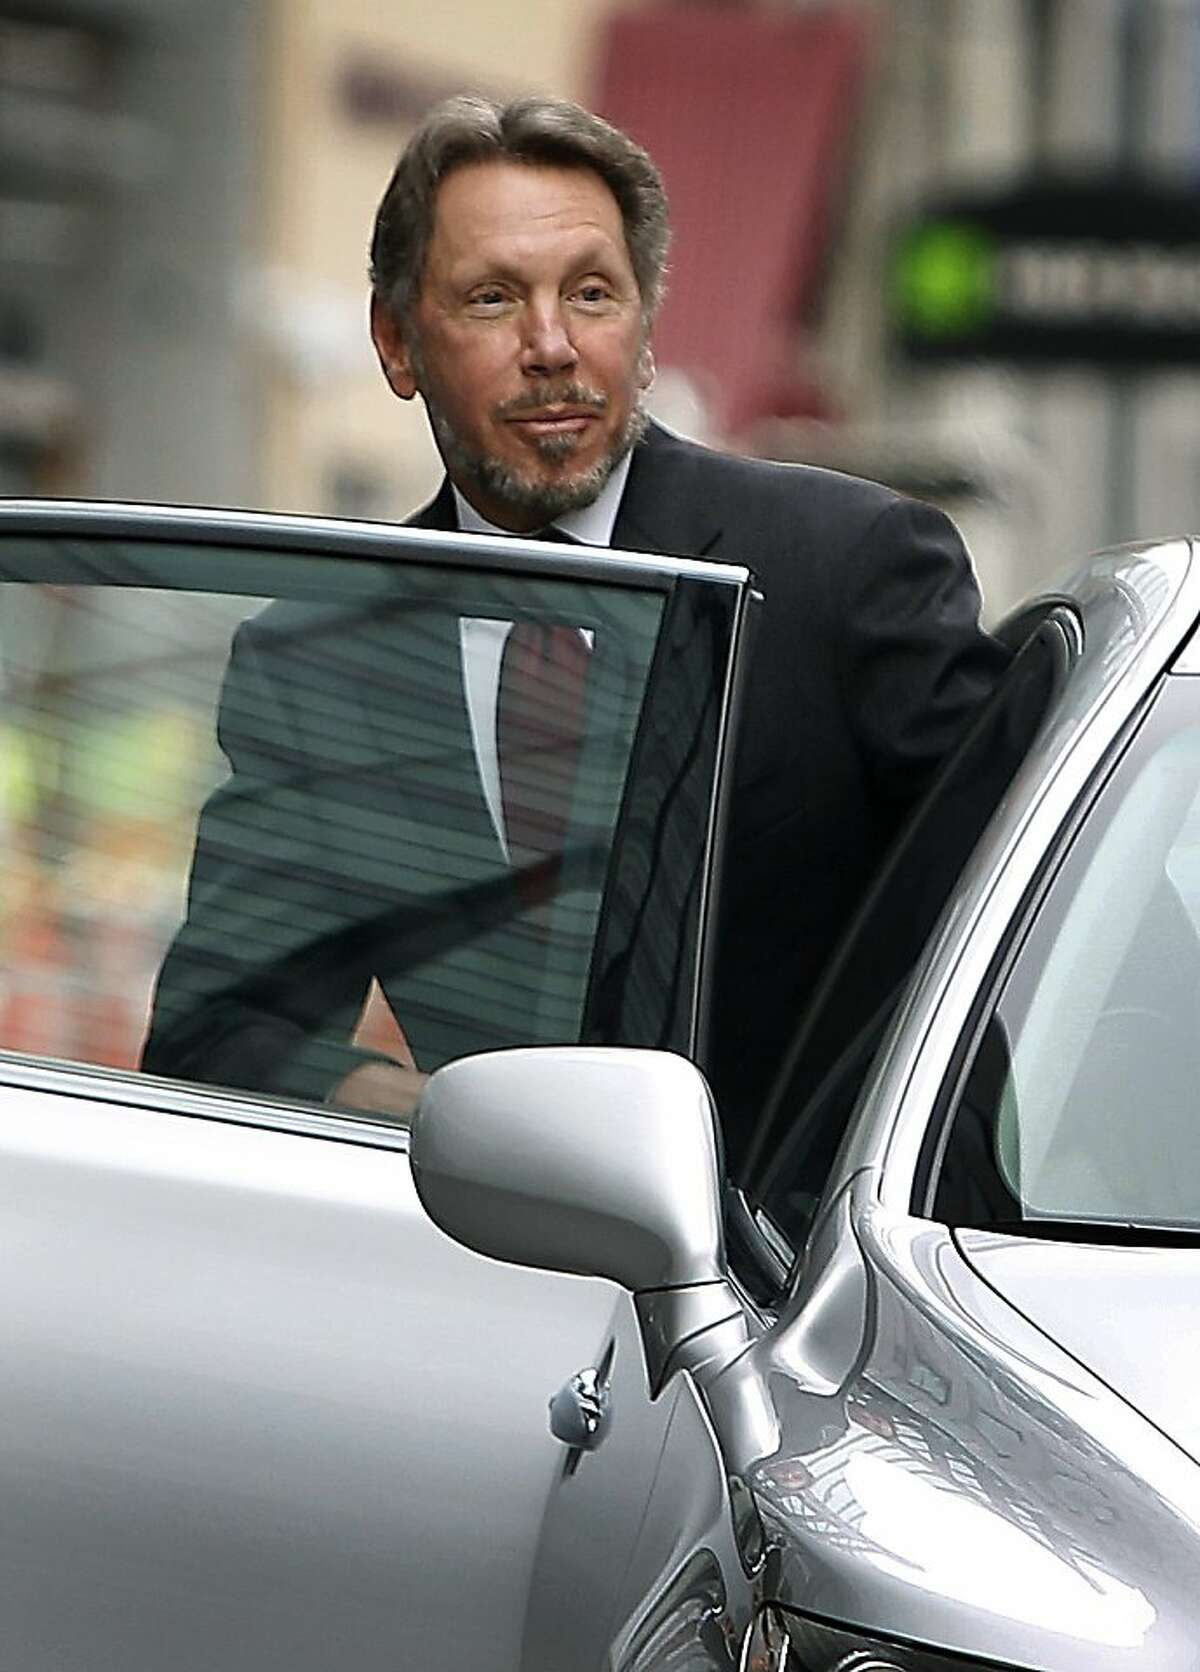 Oracle CEO Larry Ellison leaves the Phillip Burton Federal Courthouse in San Francisco, Calif. on Tuesday, April 17, 2012 after testfying in his lawsuit trail against Google. Oracle claims Google stole Oracle-owned Java technology to use in its Android mobile operating system.